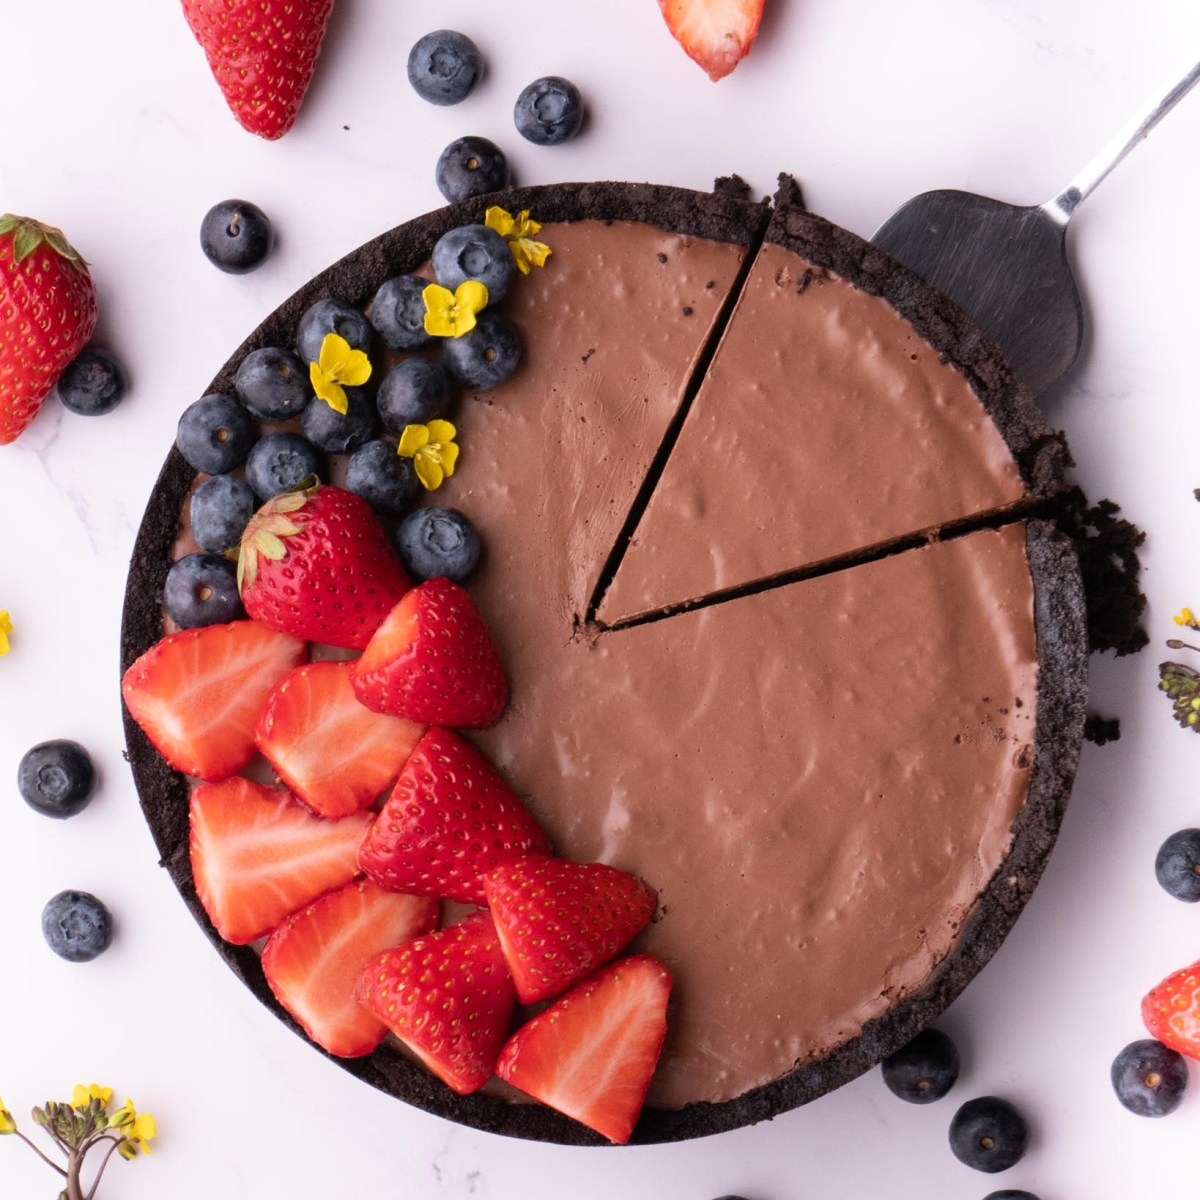 round chocolate tart, with 1 slice cut decorated with berries and flowers